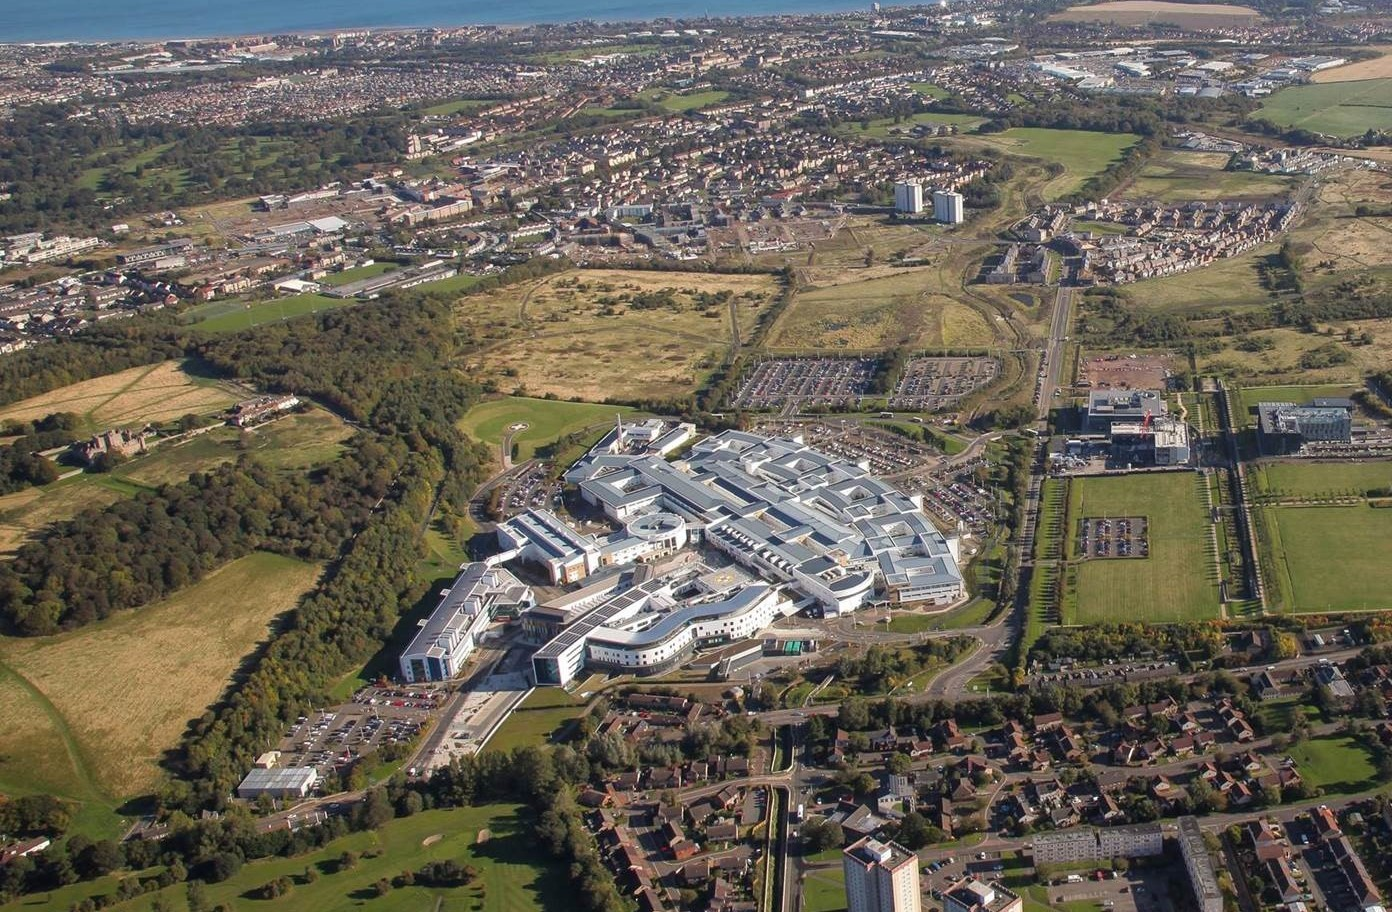 £750m expansion of Edinburgh BioQuarter healthcare and life sciences campus planned